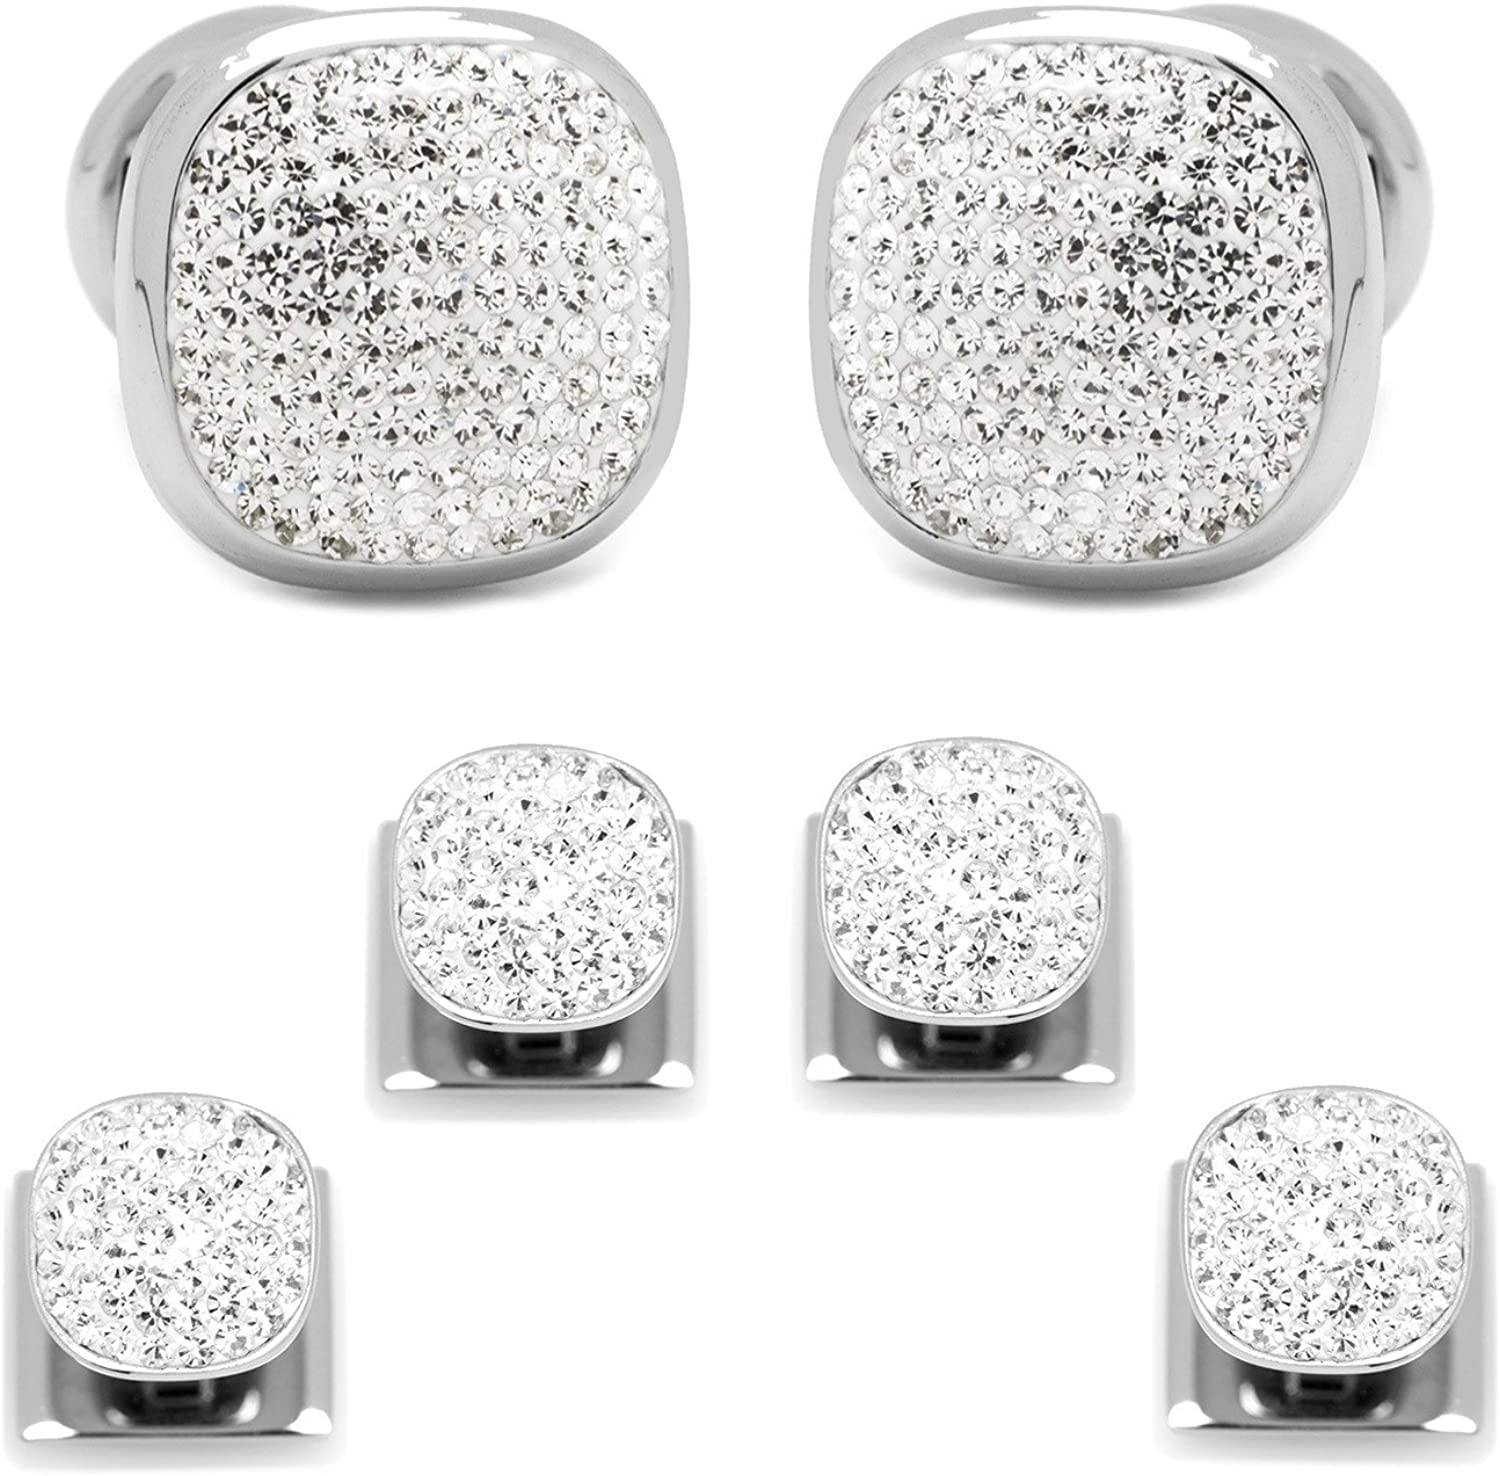 David's Formal Wear Stainless Steel White Pave Crystal Stud and Cufflink Set